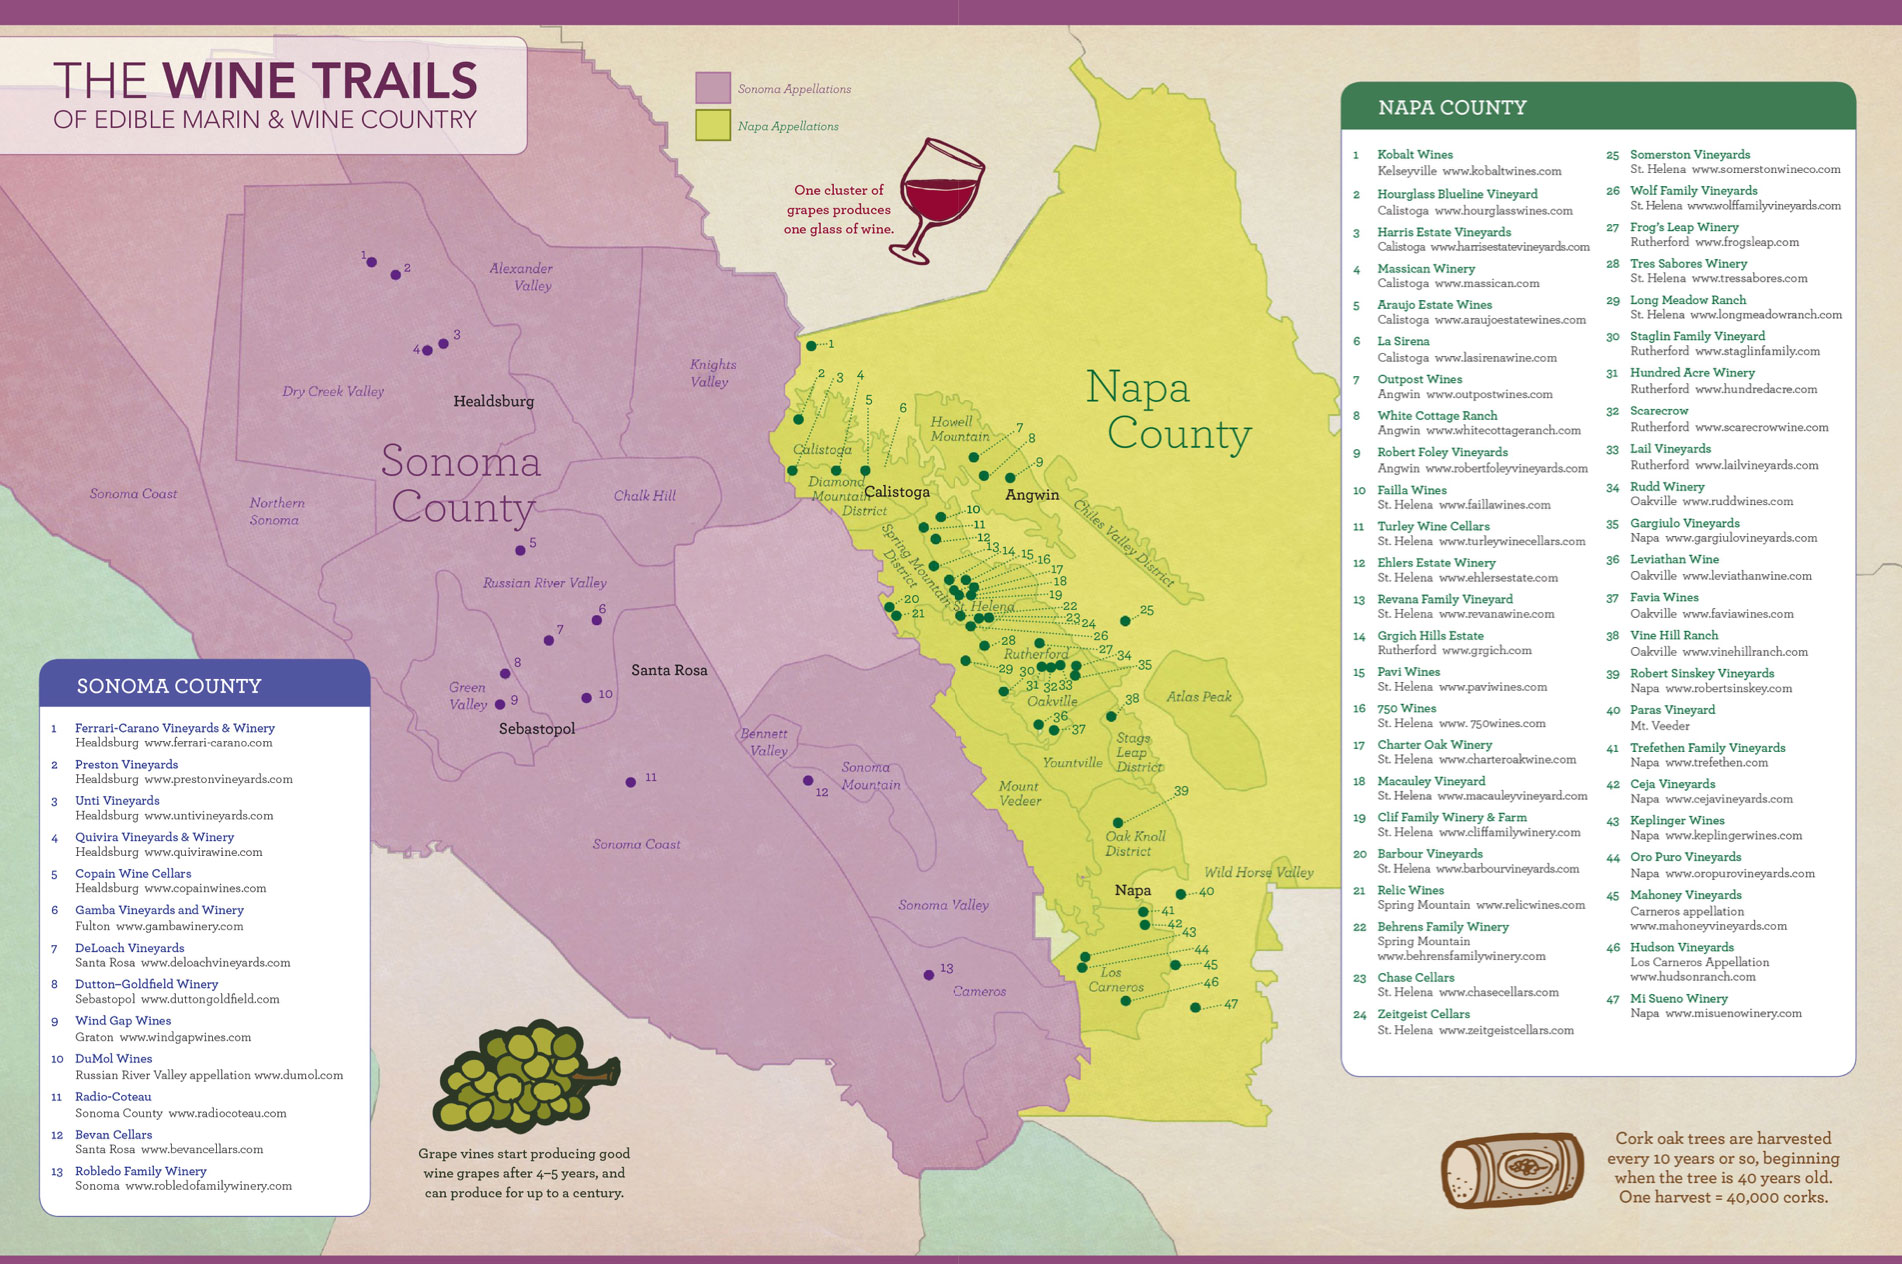 Wine trails map of Sonoma and Napa counties